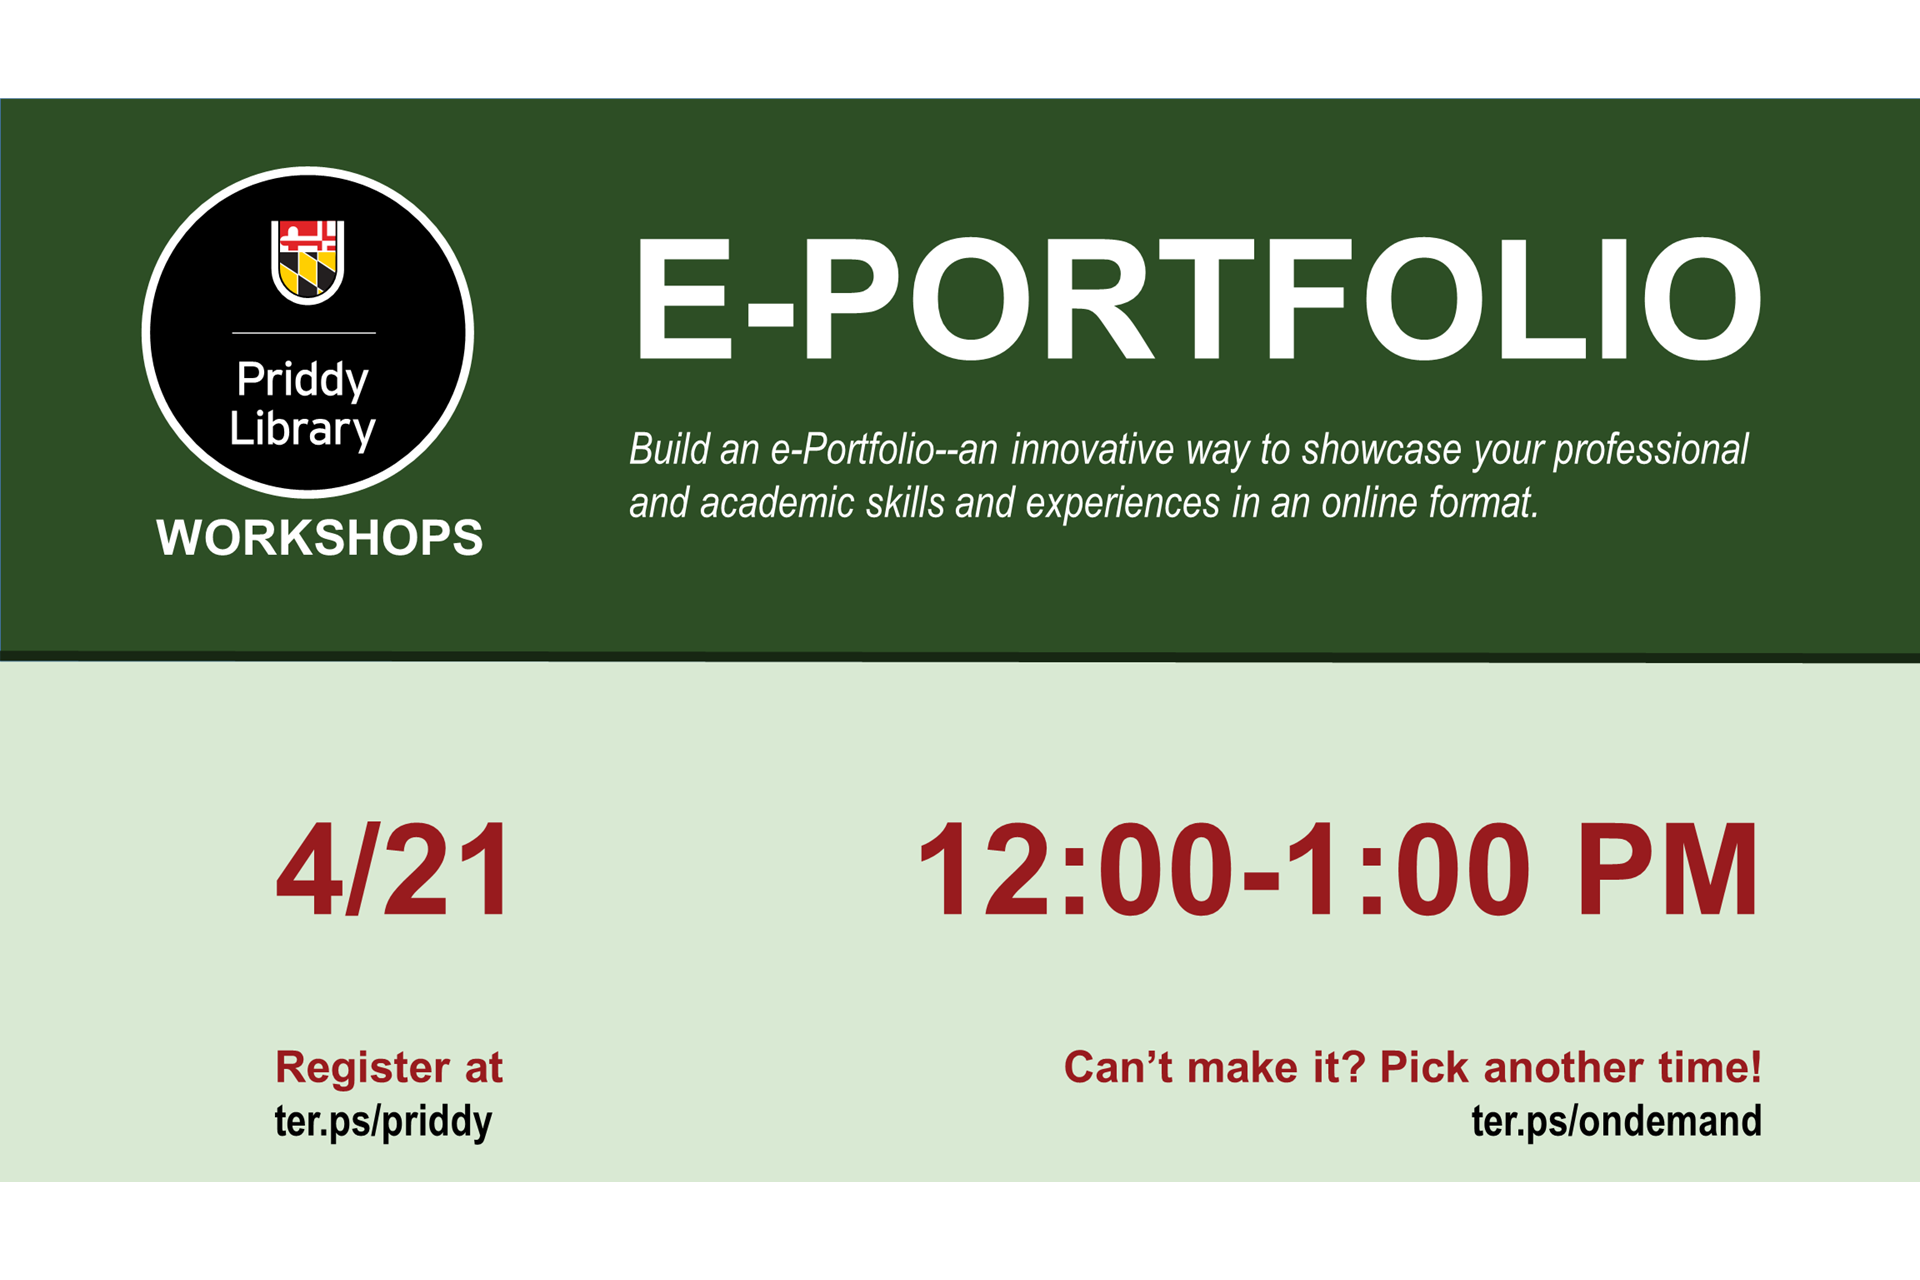 e-Portfolio workshop flyer